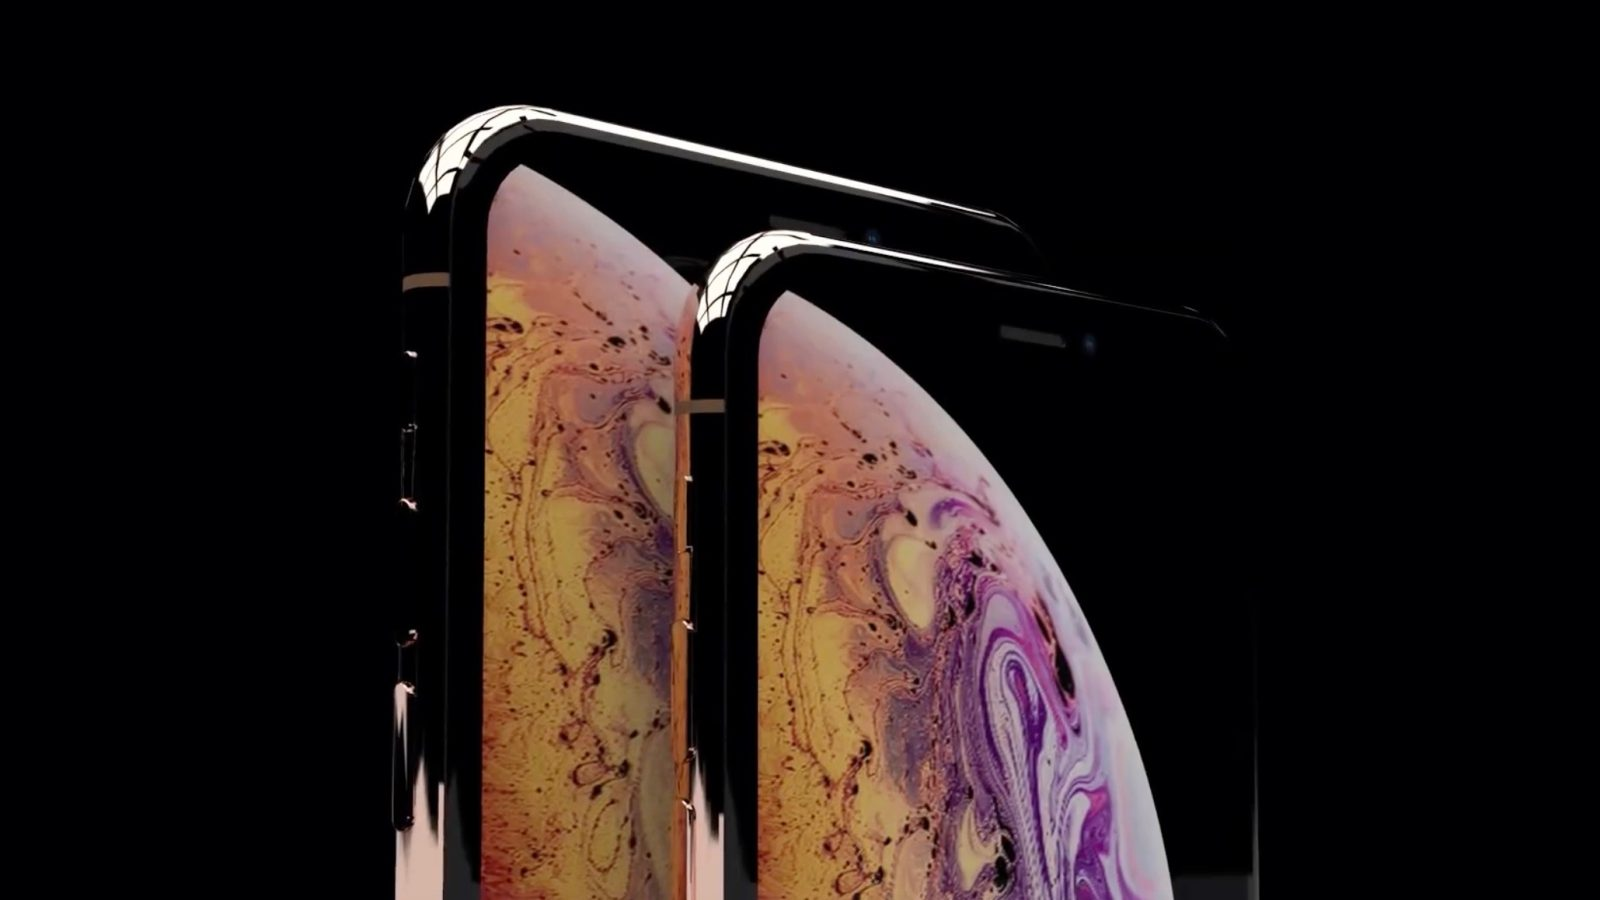 The alleged iPhone XS Plus (left) and iPhone XS (right)